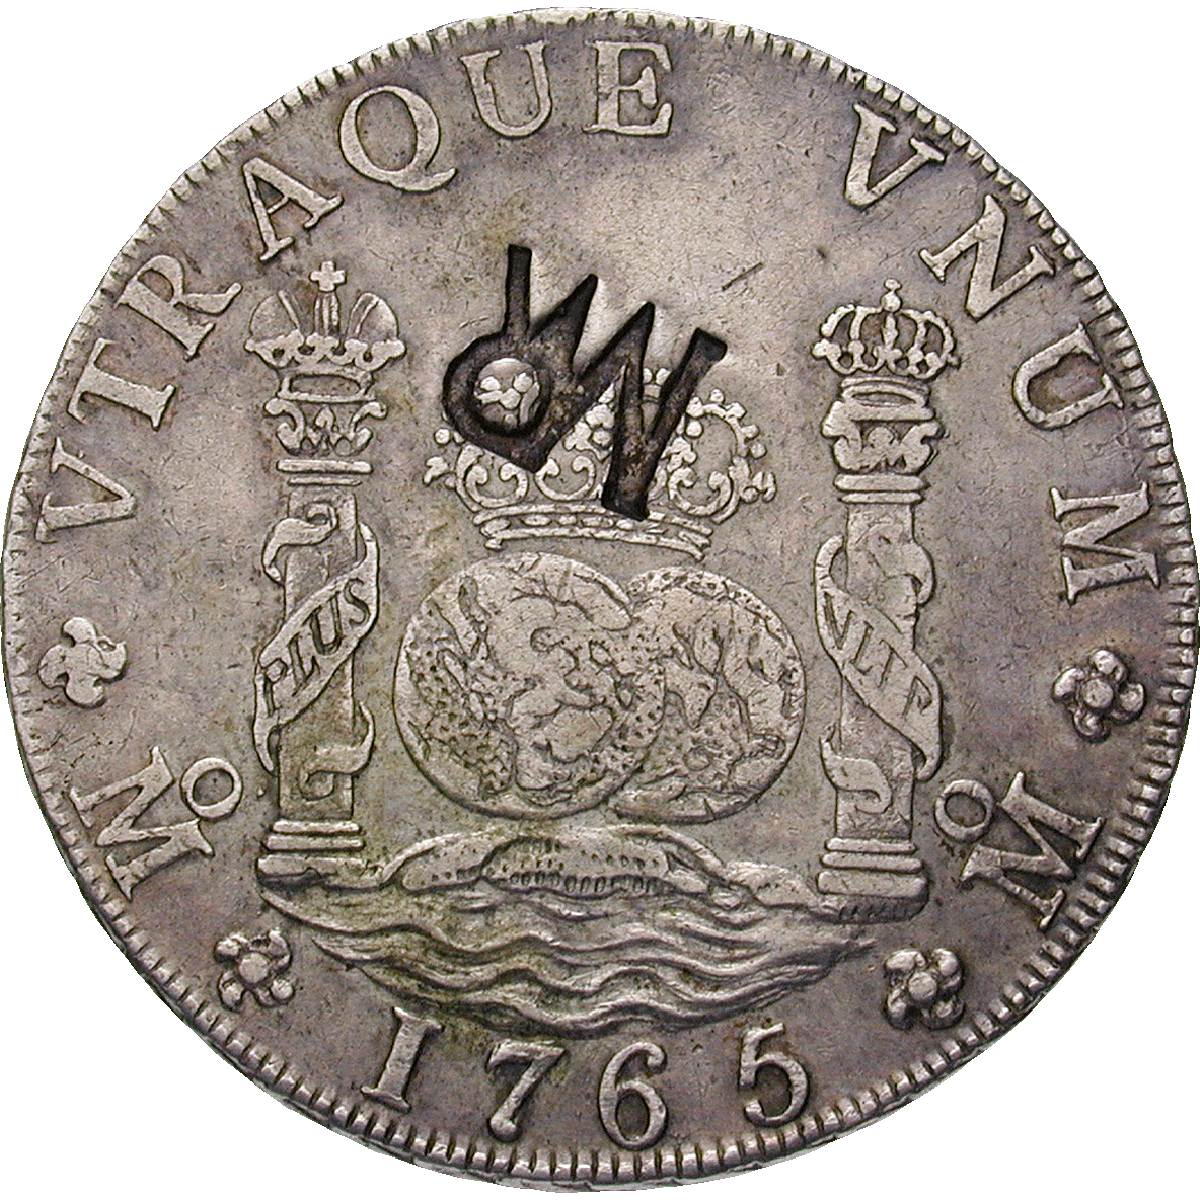 Mozambique, José I of Portugal, Real de a ocho (Peso) 1765 with Mozambican Countermark (reverse)